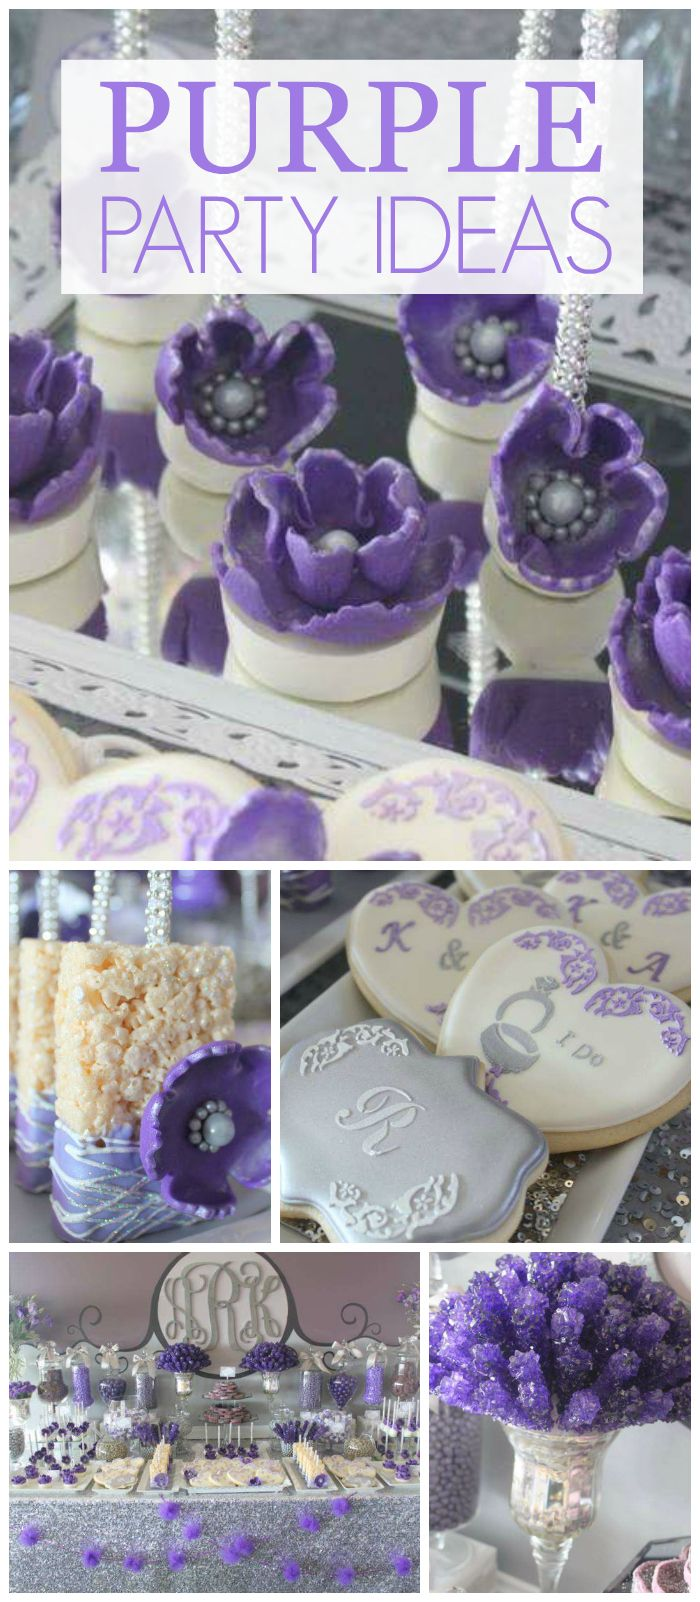 You won't believe the incredible desserts at this purple party! See more party planning ideas at CatchMyParty.com!